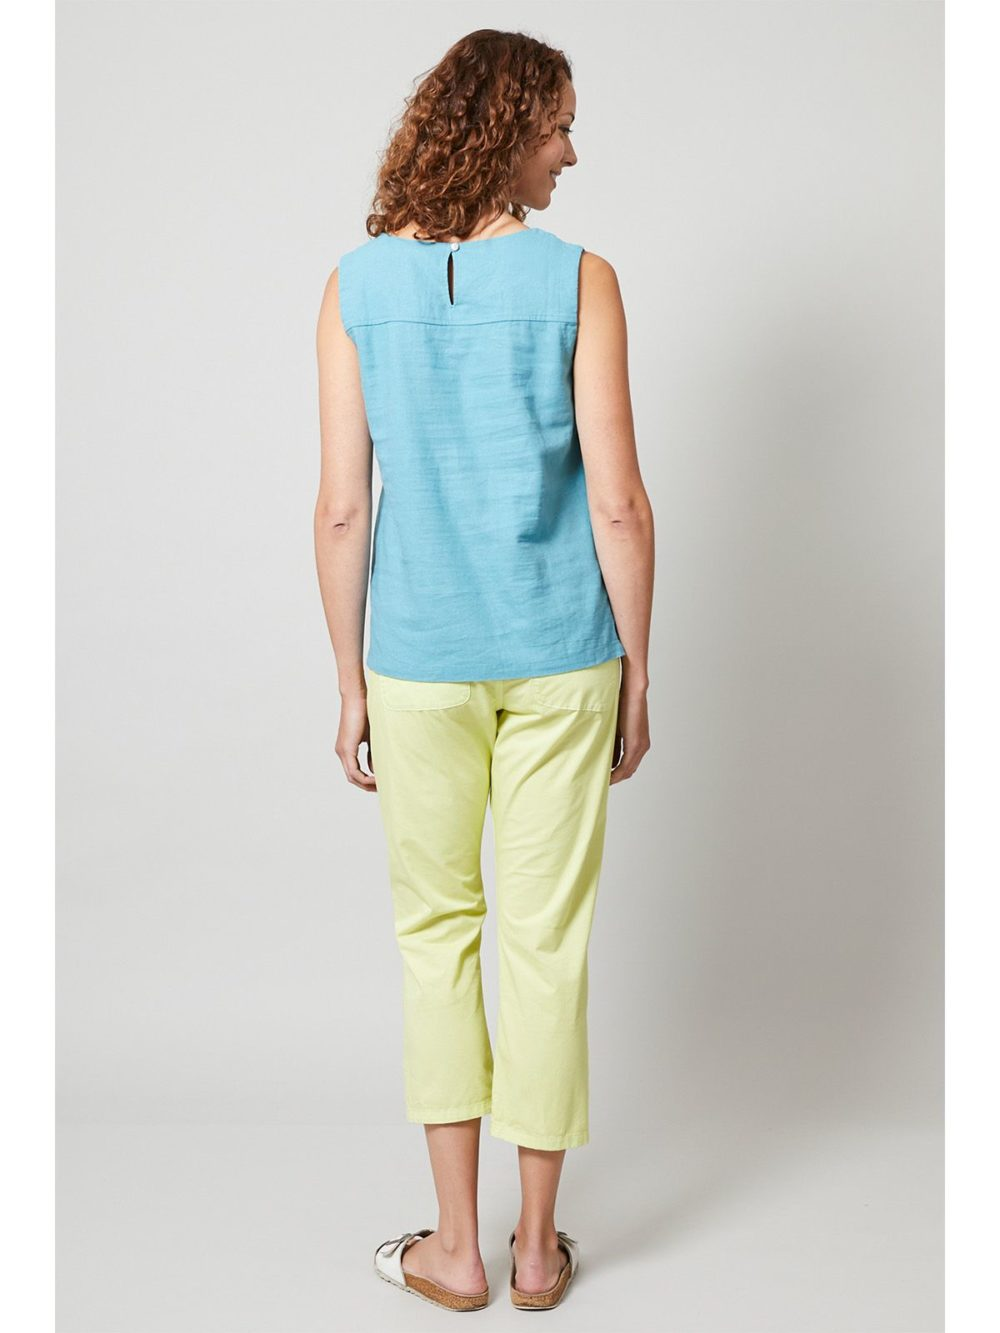 Twill Crop Trouser Lily and Me Katie Kerr Women's Clothing